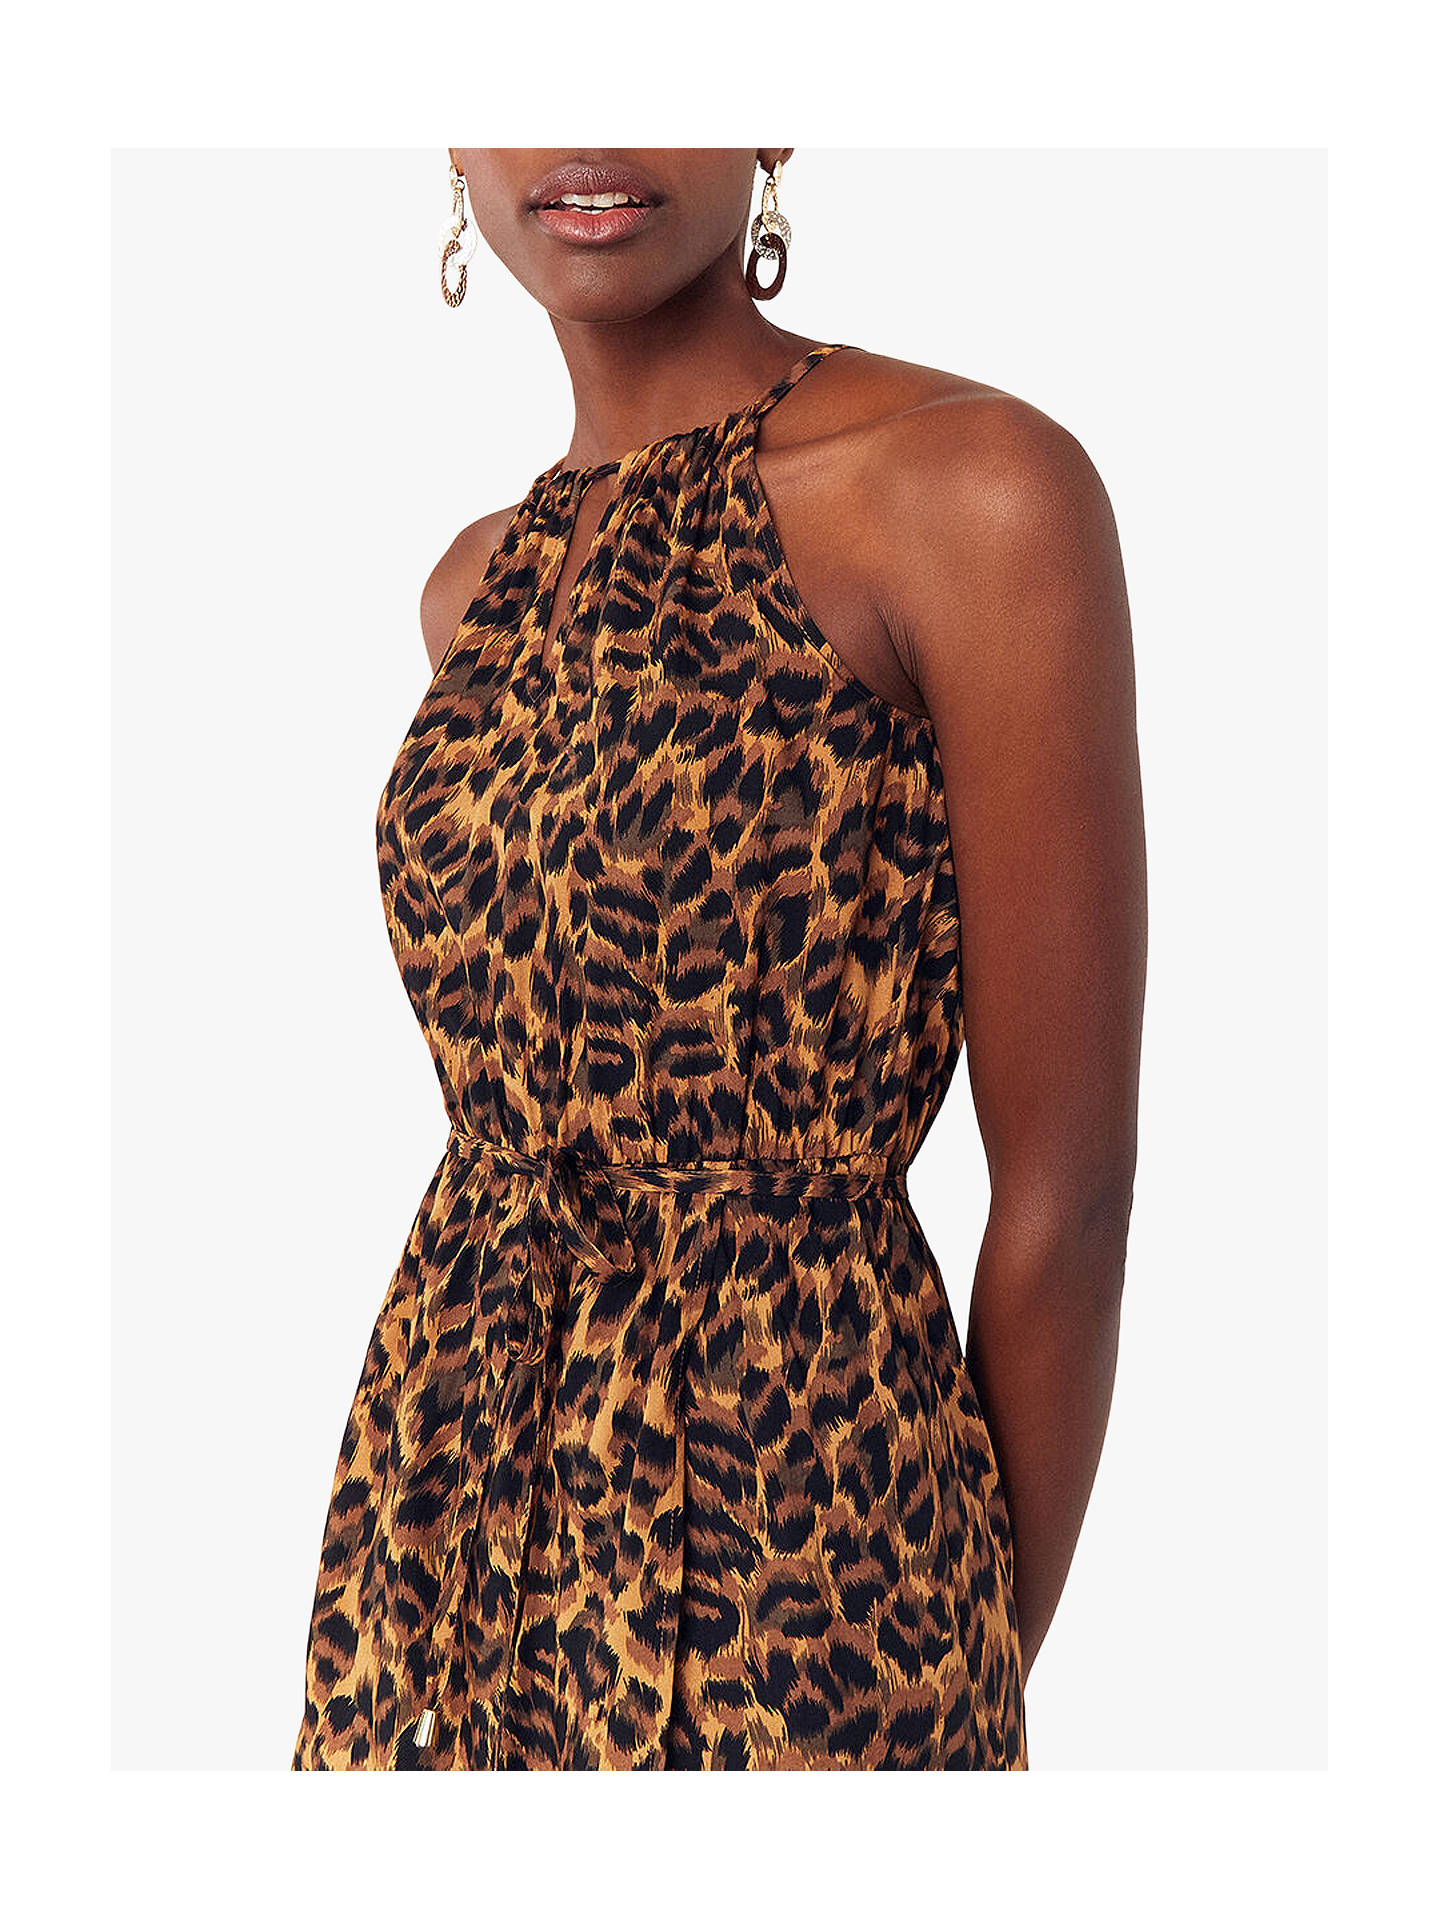 fcef50995767 ... Buy Oasis Leopard Print Halter Dress, Multi, 6R Online at johnlewis.com